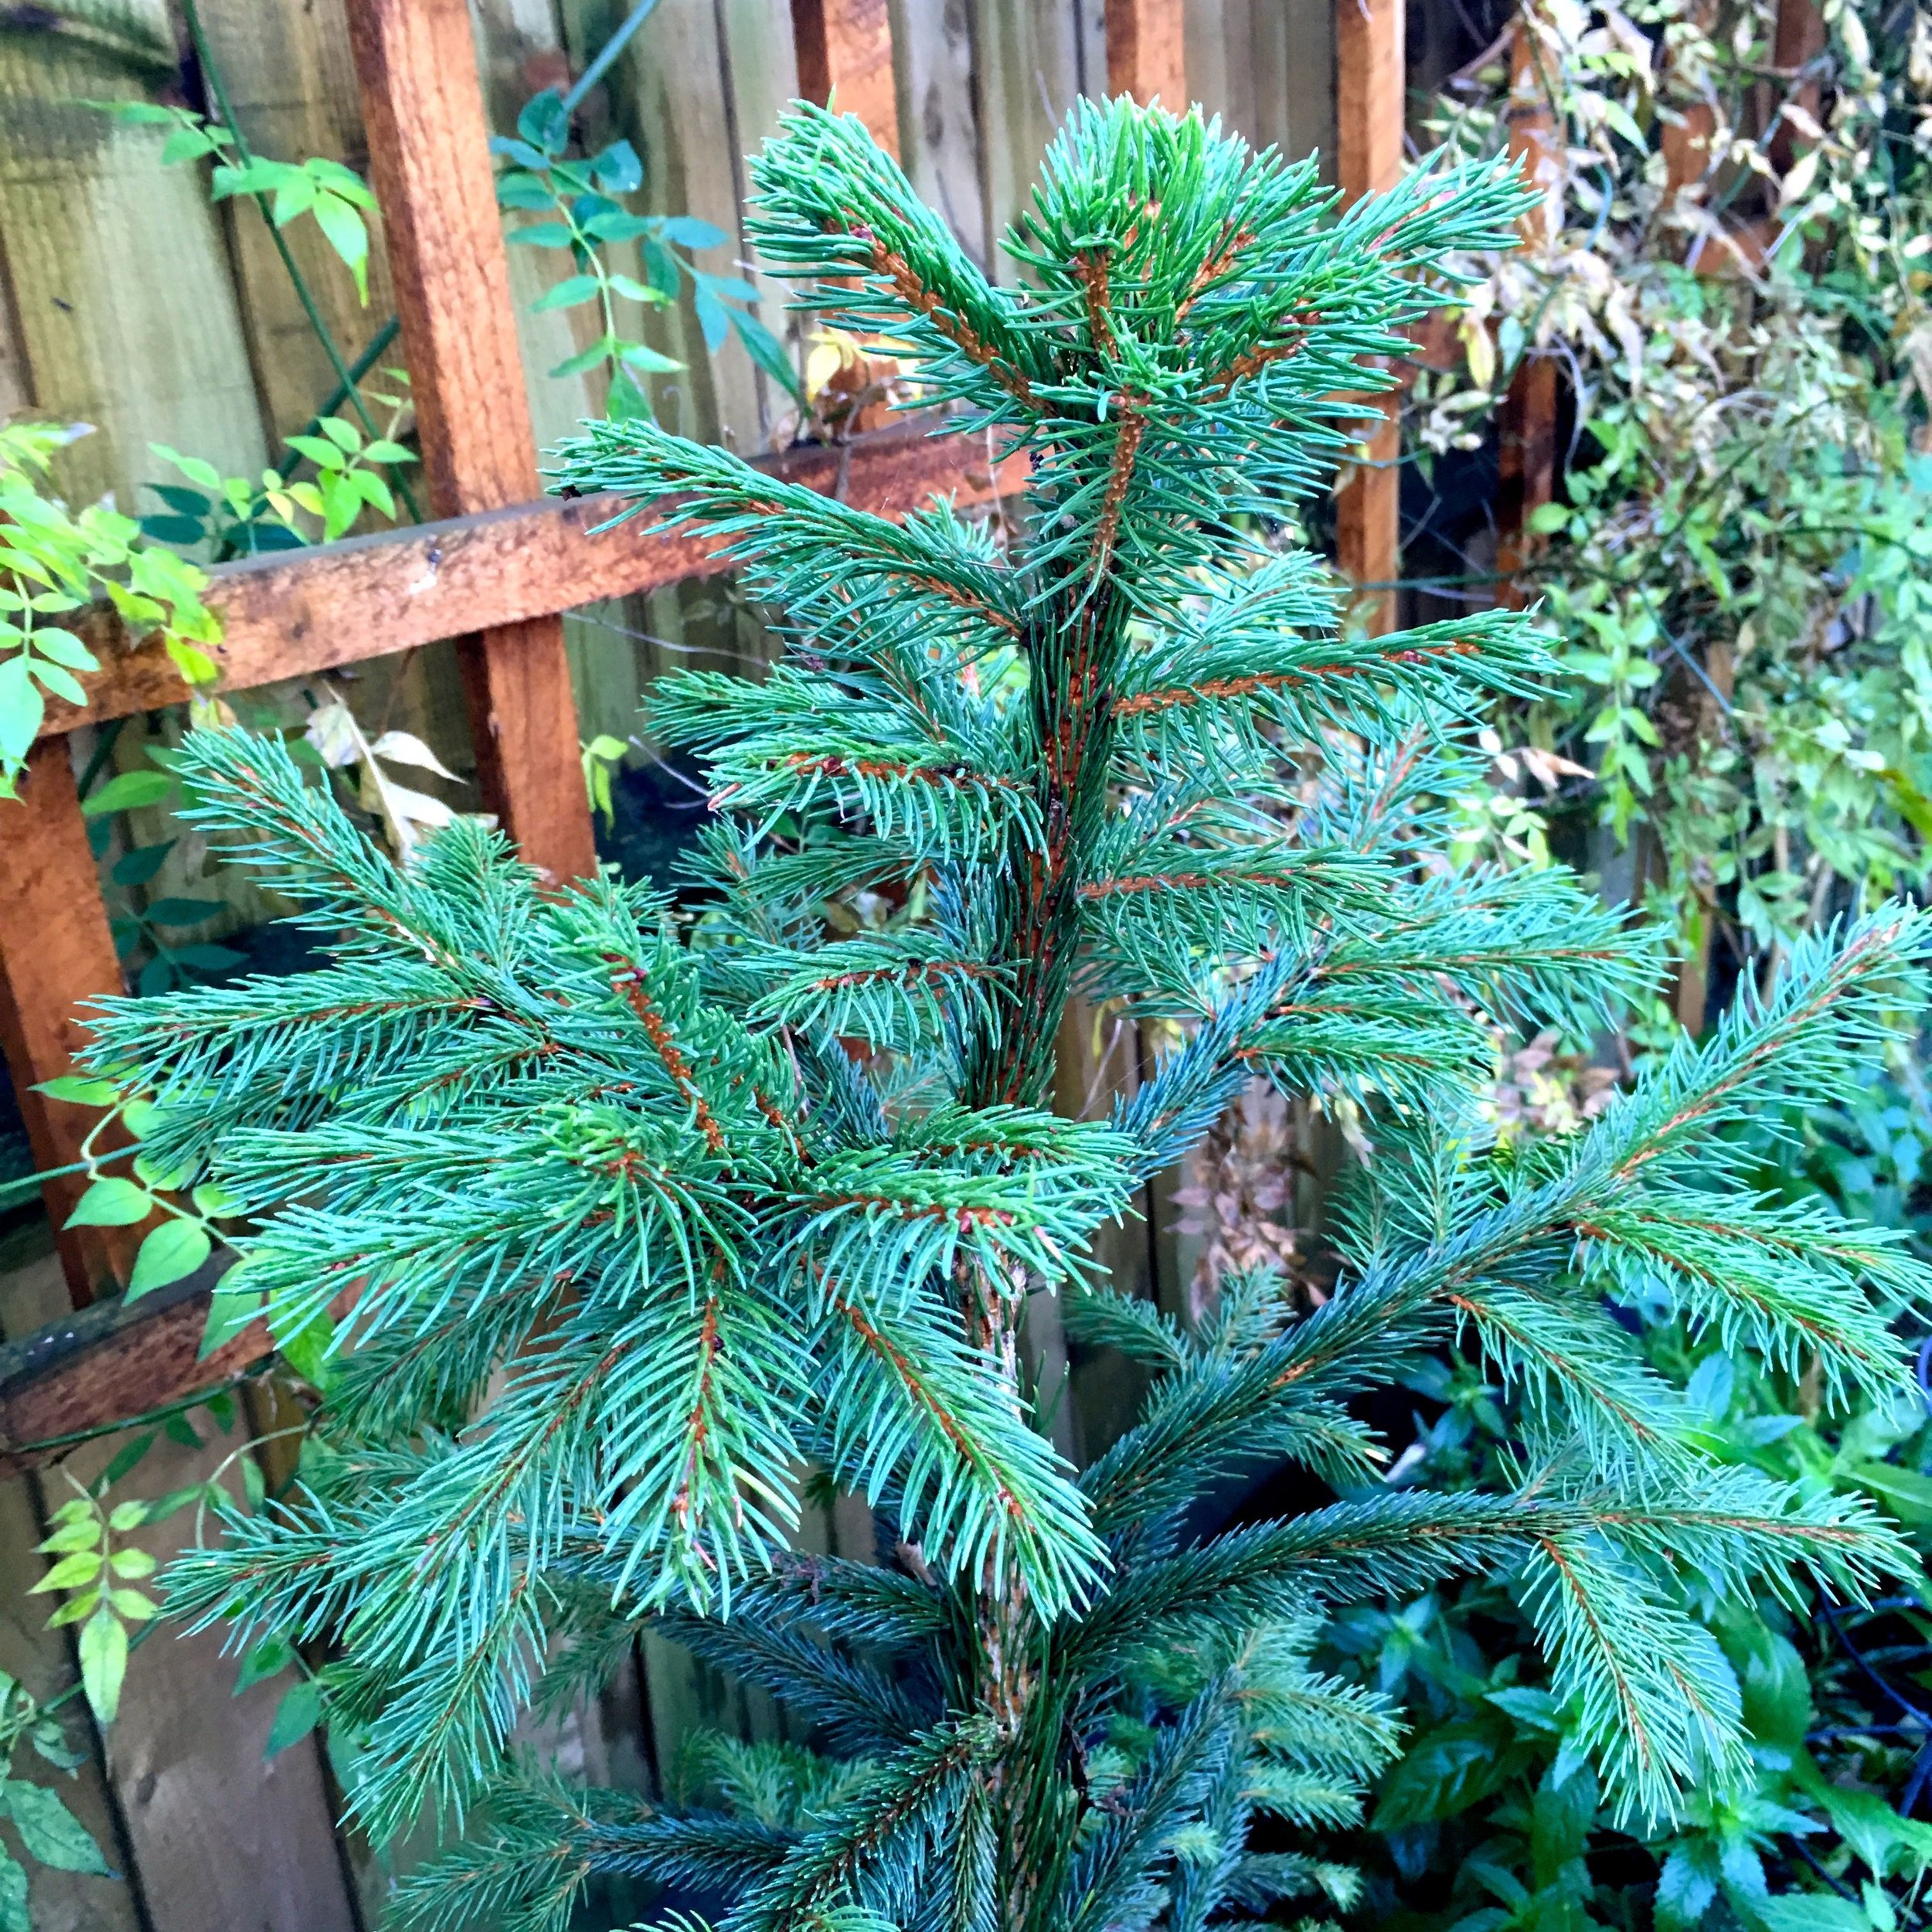 The little Christmas tree from last year is still doing well, but will I cut it for my wreath this year?